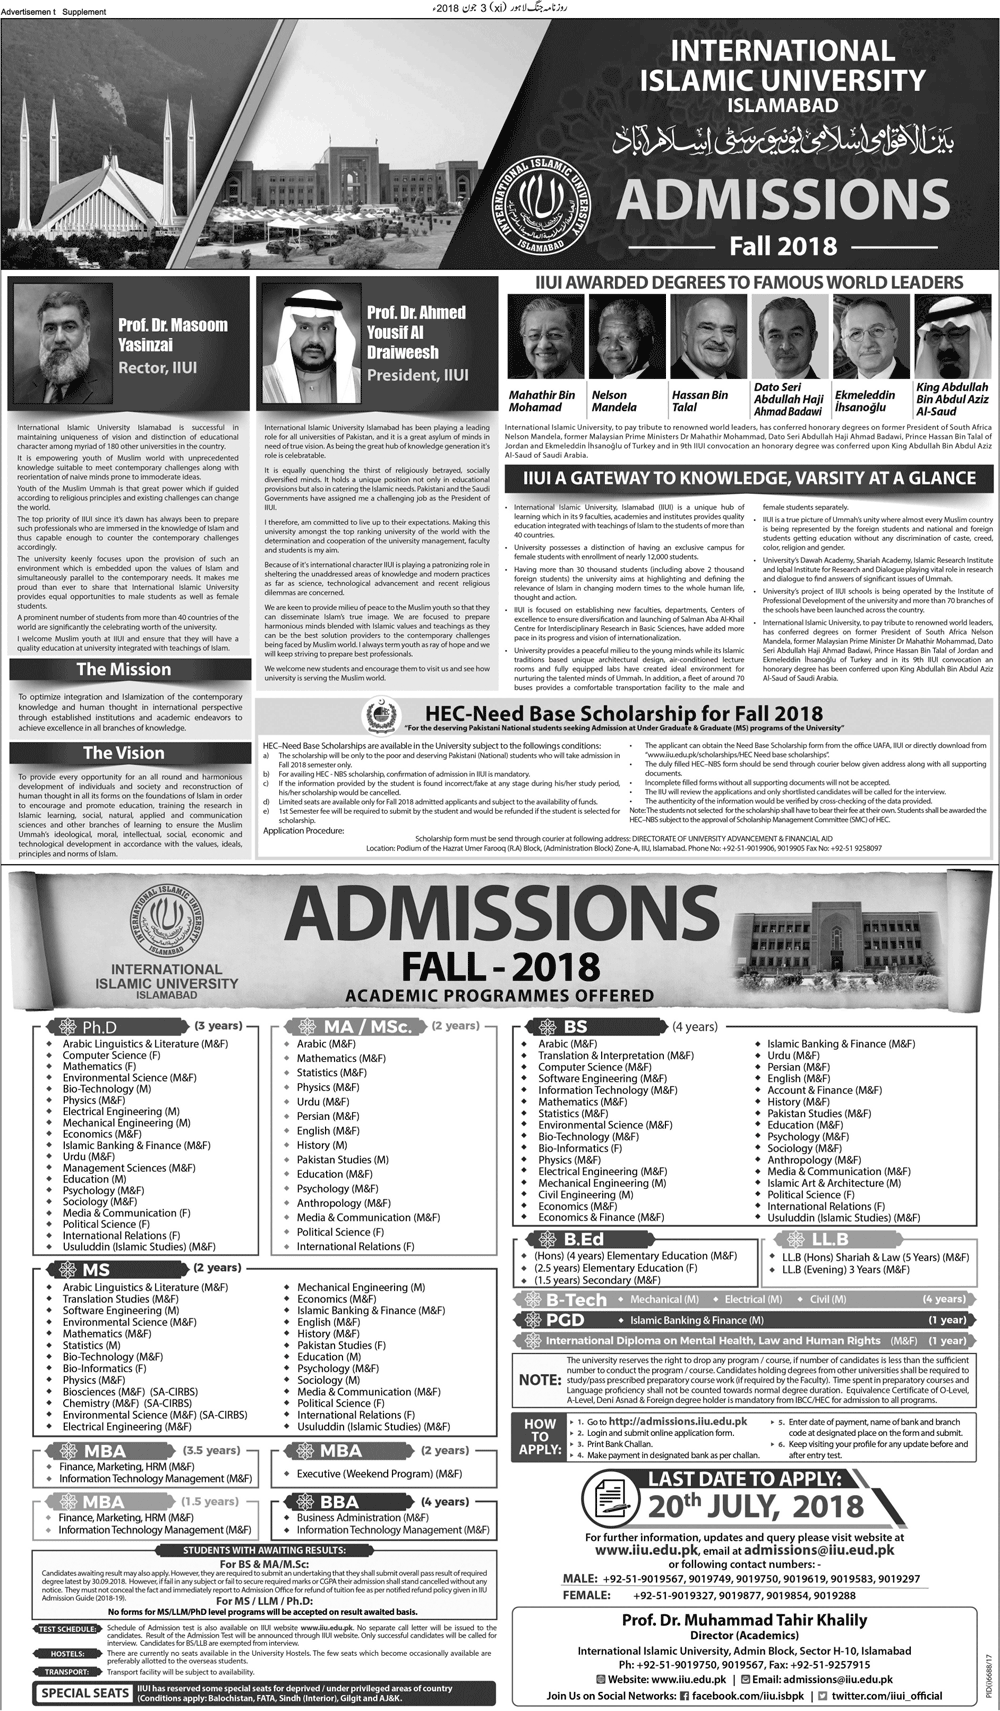 International Islamic University Islamabad Admission 2018